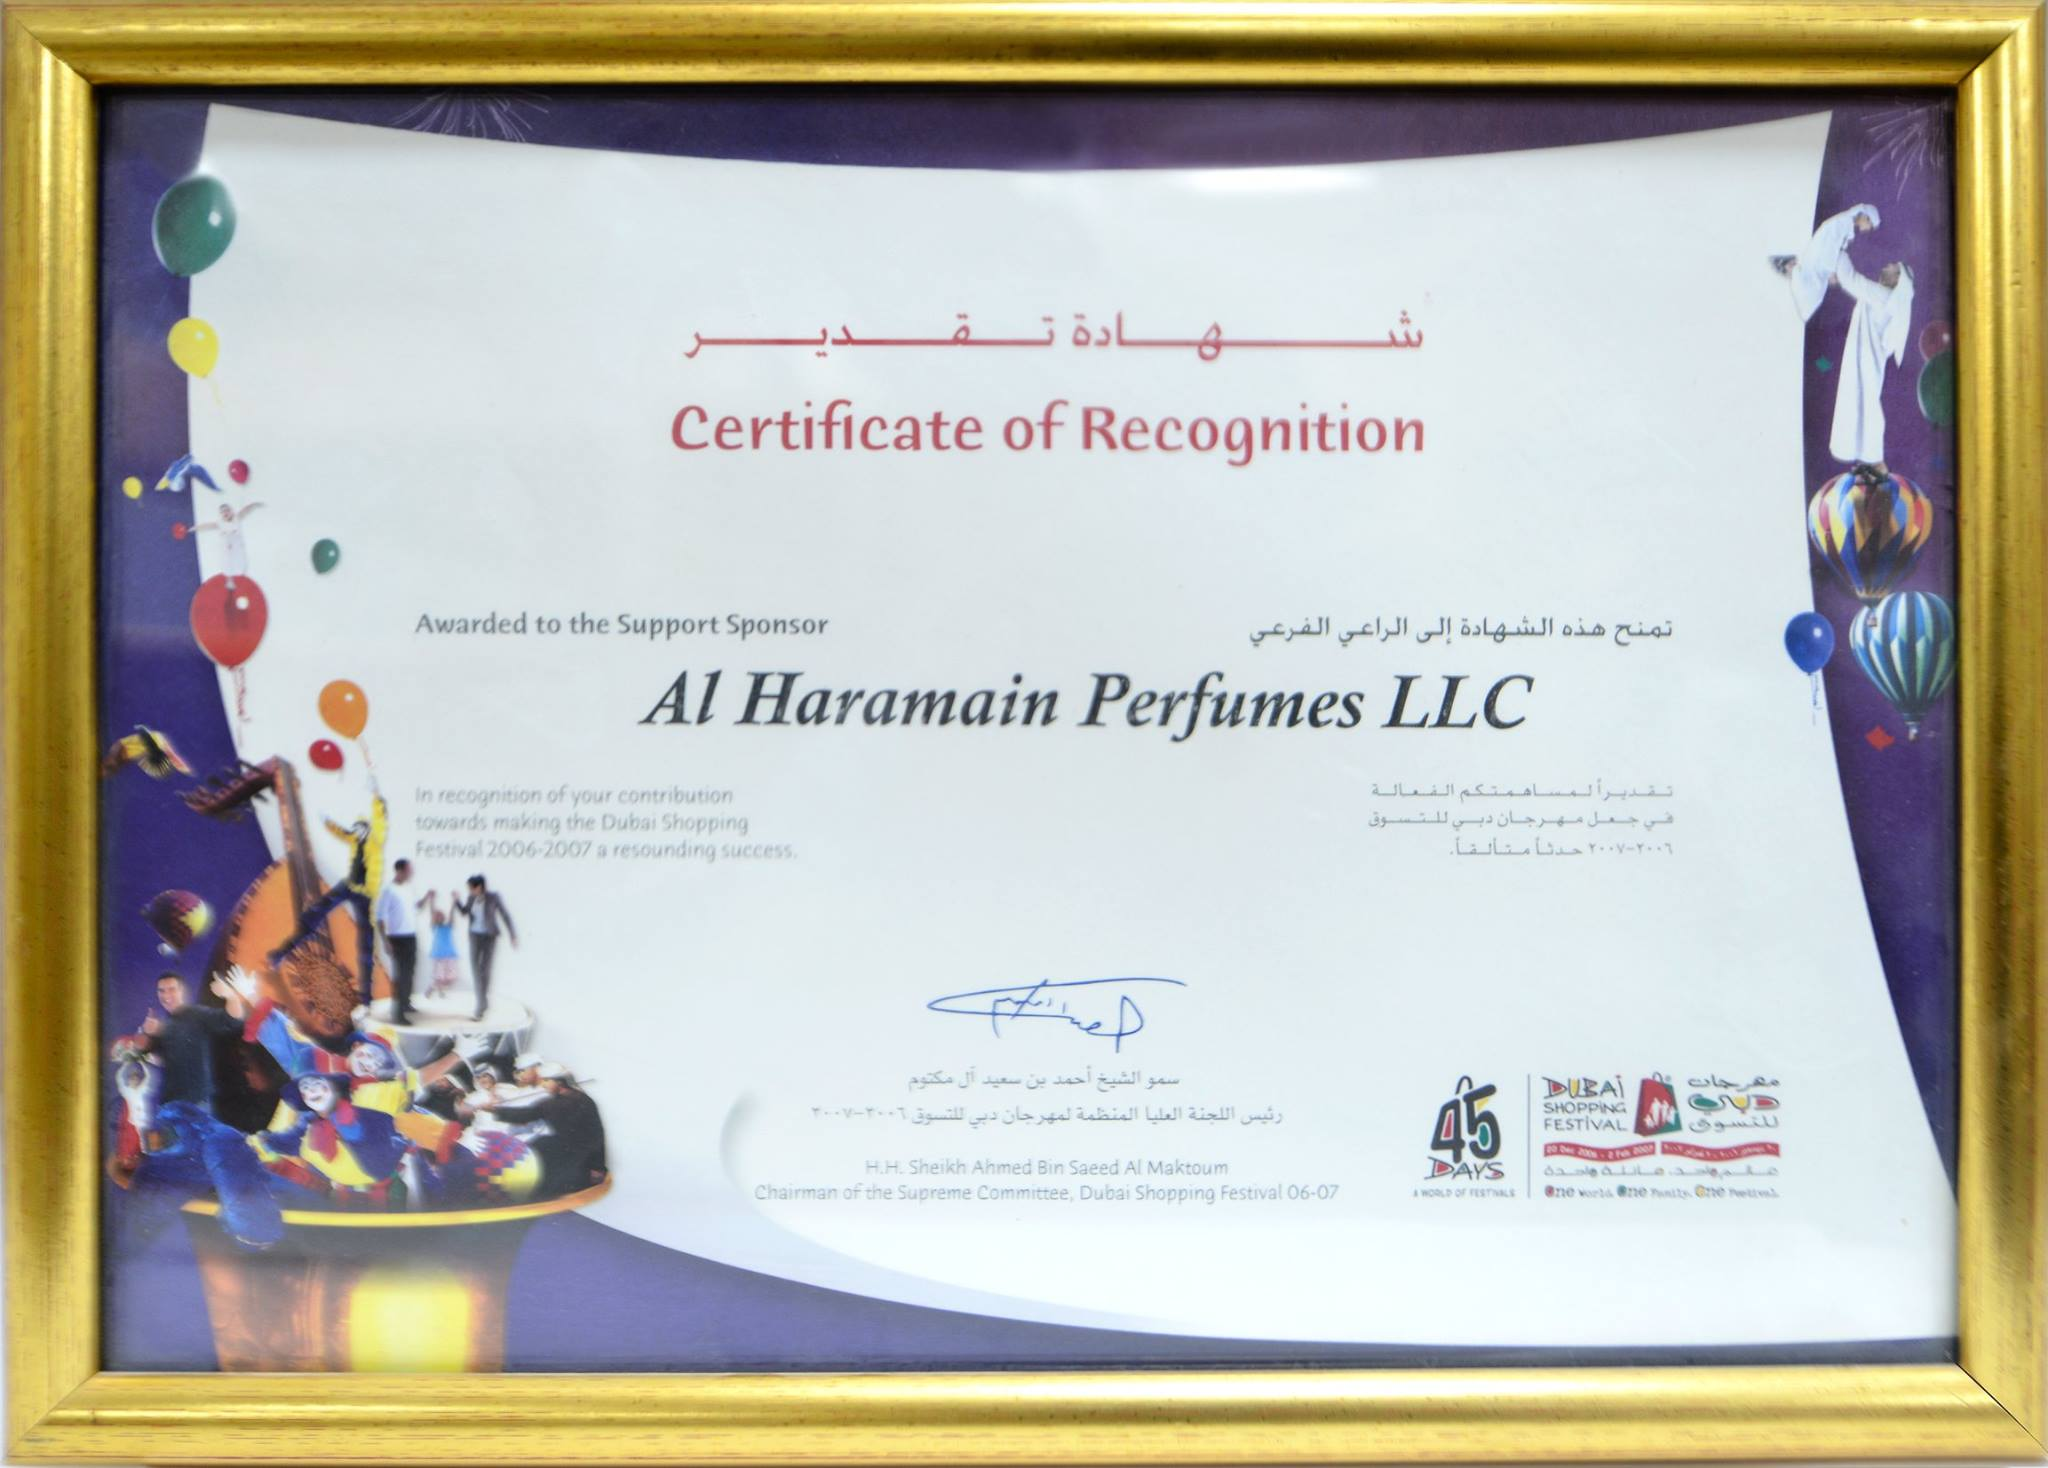 Al Haramain Perfumes Dubai Shopping Festival 2006 - 2007 Support Sponsor Award